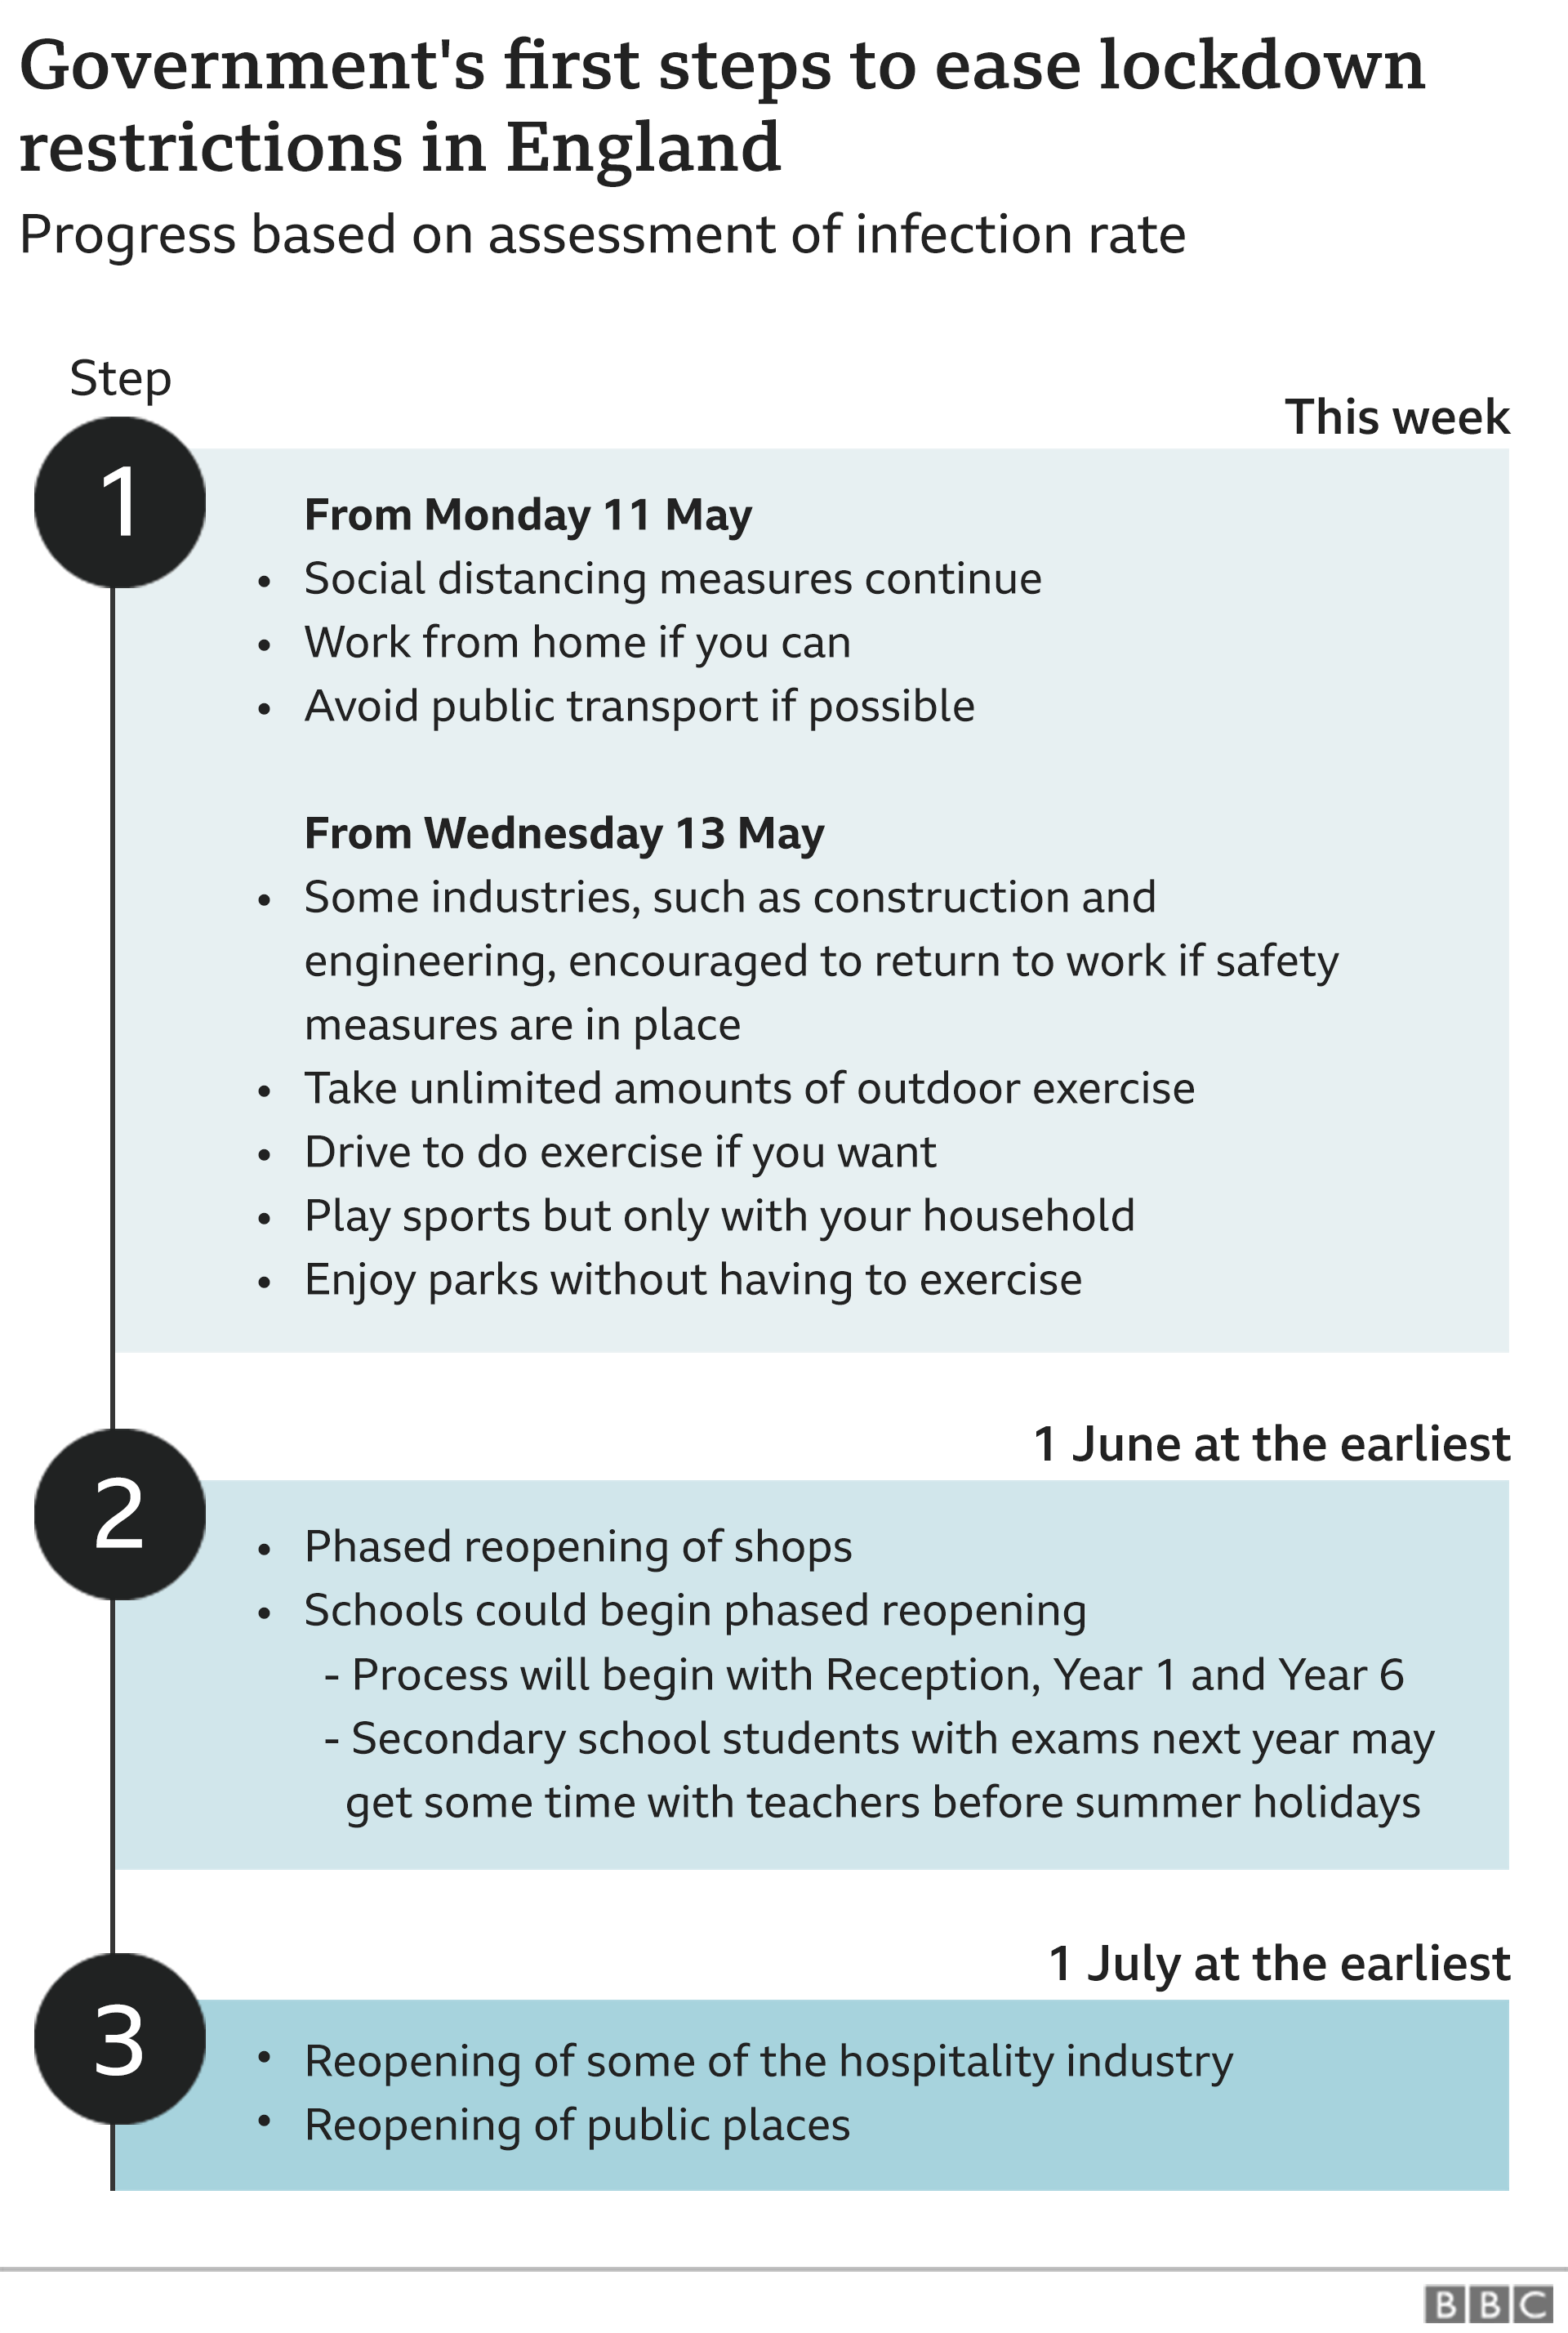 Stages of lockdown: Step 1 – from Monday 11 May: Social distancing measures continue. Work from home if you can. Some industries, such as construction and engineering, encouraged to return to work if safety measures are in place. Avoid public transport if possible. Then from Wednesday 13 May: Take unlimited amounts of outdoor exercise. Drive to do exercise if you want. Play sports but only with your household. Enjoy parks without having to exercise. Step 2 – from 1 June at the earliest: Phased reopening of shops. Schools could begin phased reopening. Process will begin with reception Year 1 and Year 6. Secondary school students with exams next year may get some time with teachers before summer holidays. Step 3 – from 1 July at the earliest: Reopening of some of the hospitality industry. Reopening of public places.